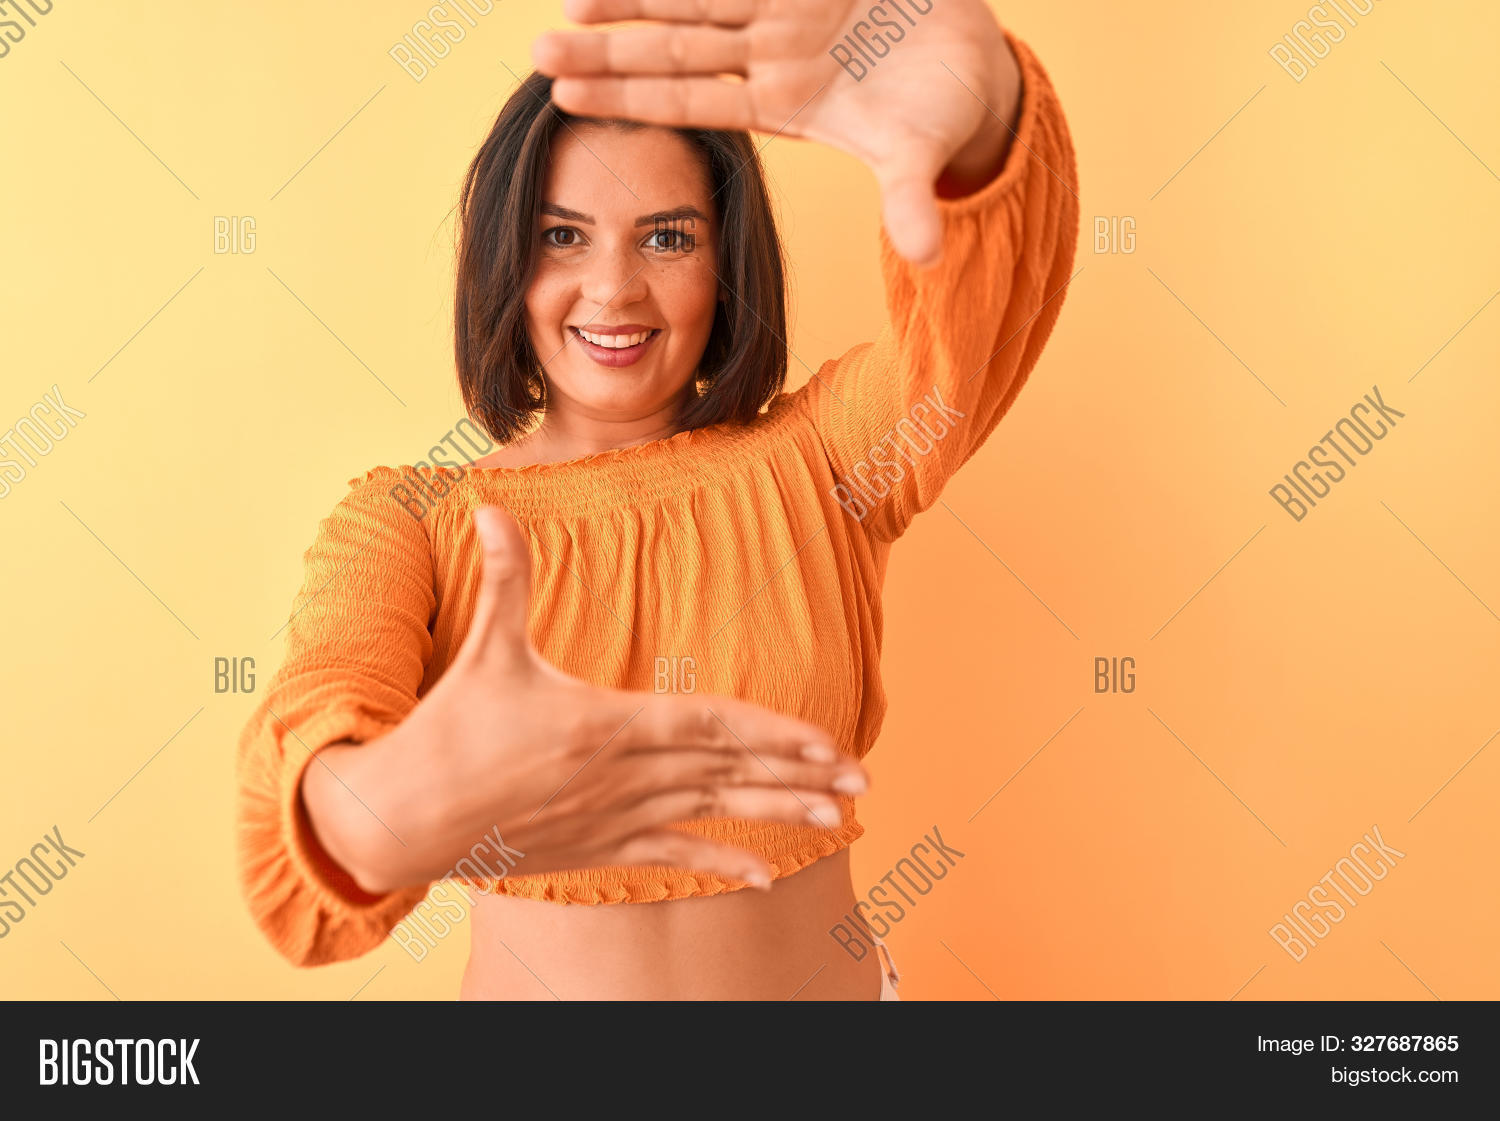 Young beautiful woman wearing casual t-shirt standing over isolated orange background smiling making frame with hands and fingers with happy face. Creativity and photography concept.